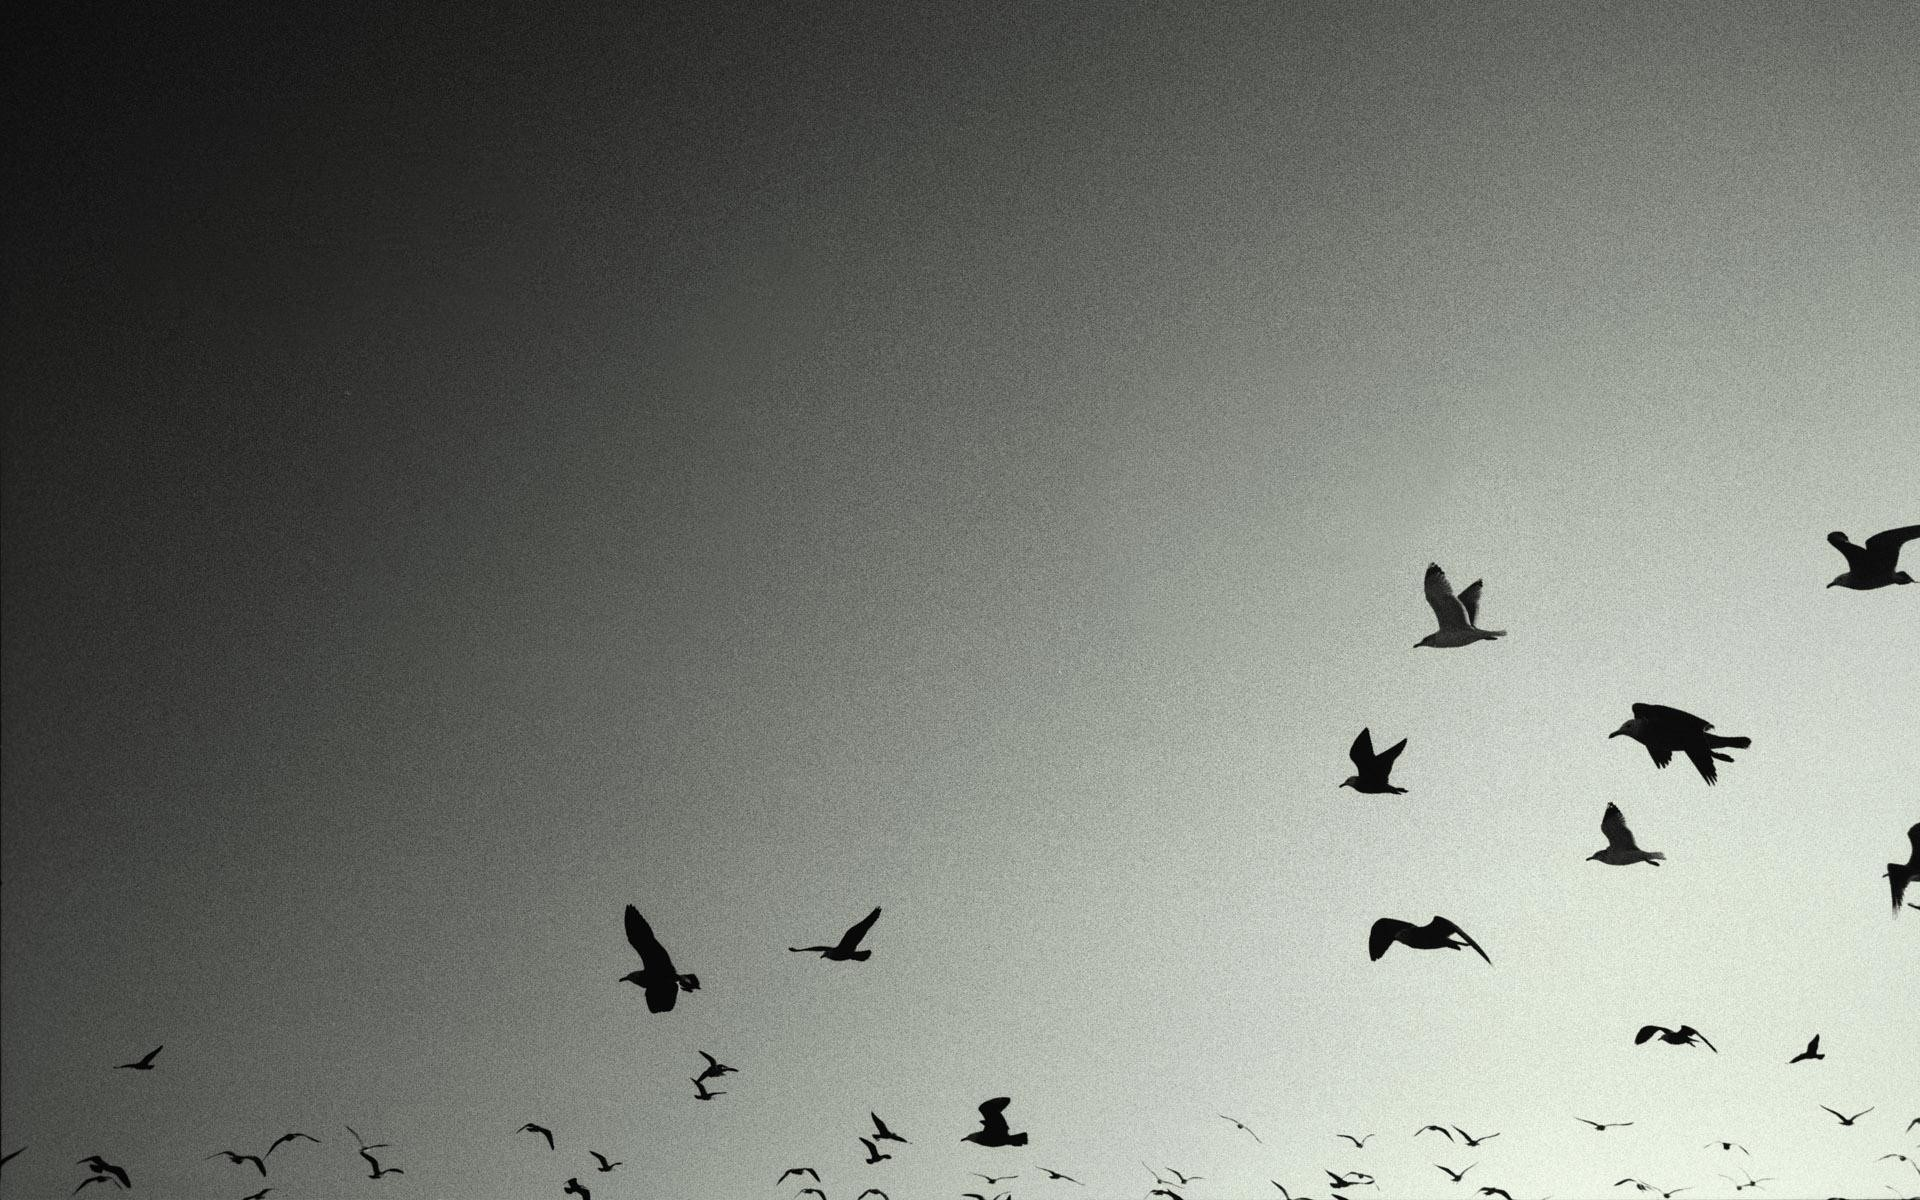 Birds-crows-grey-wallpaper-backgrounds-HD